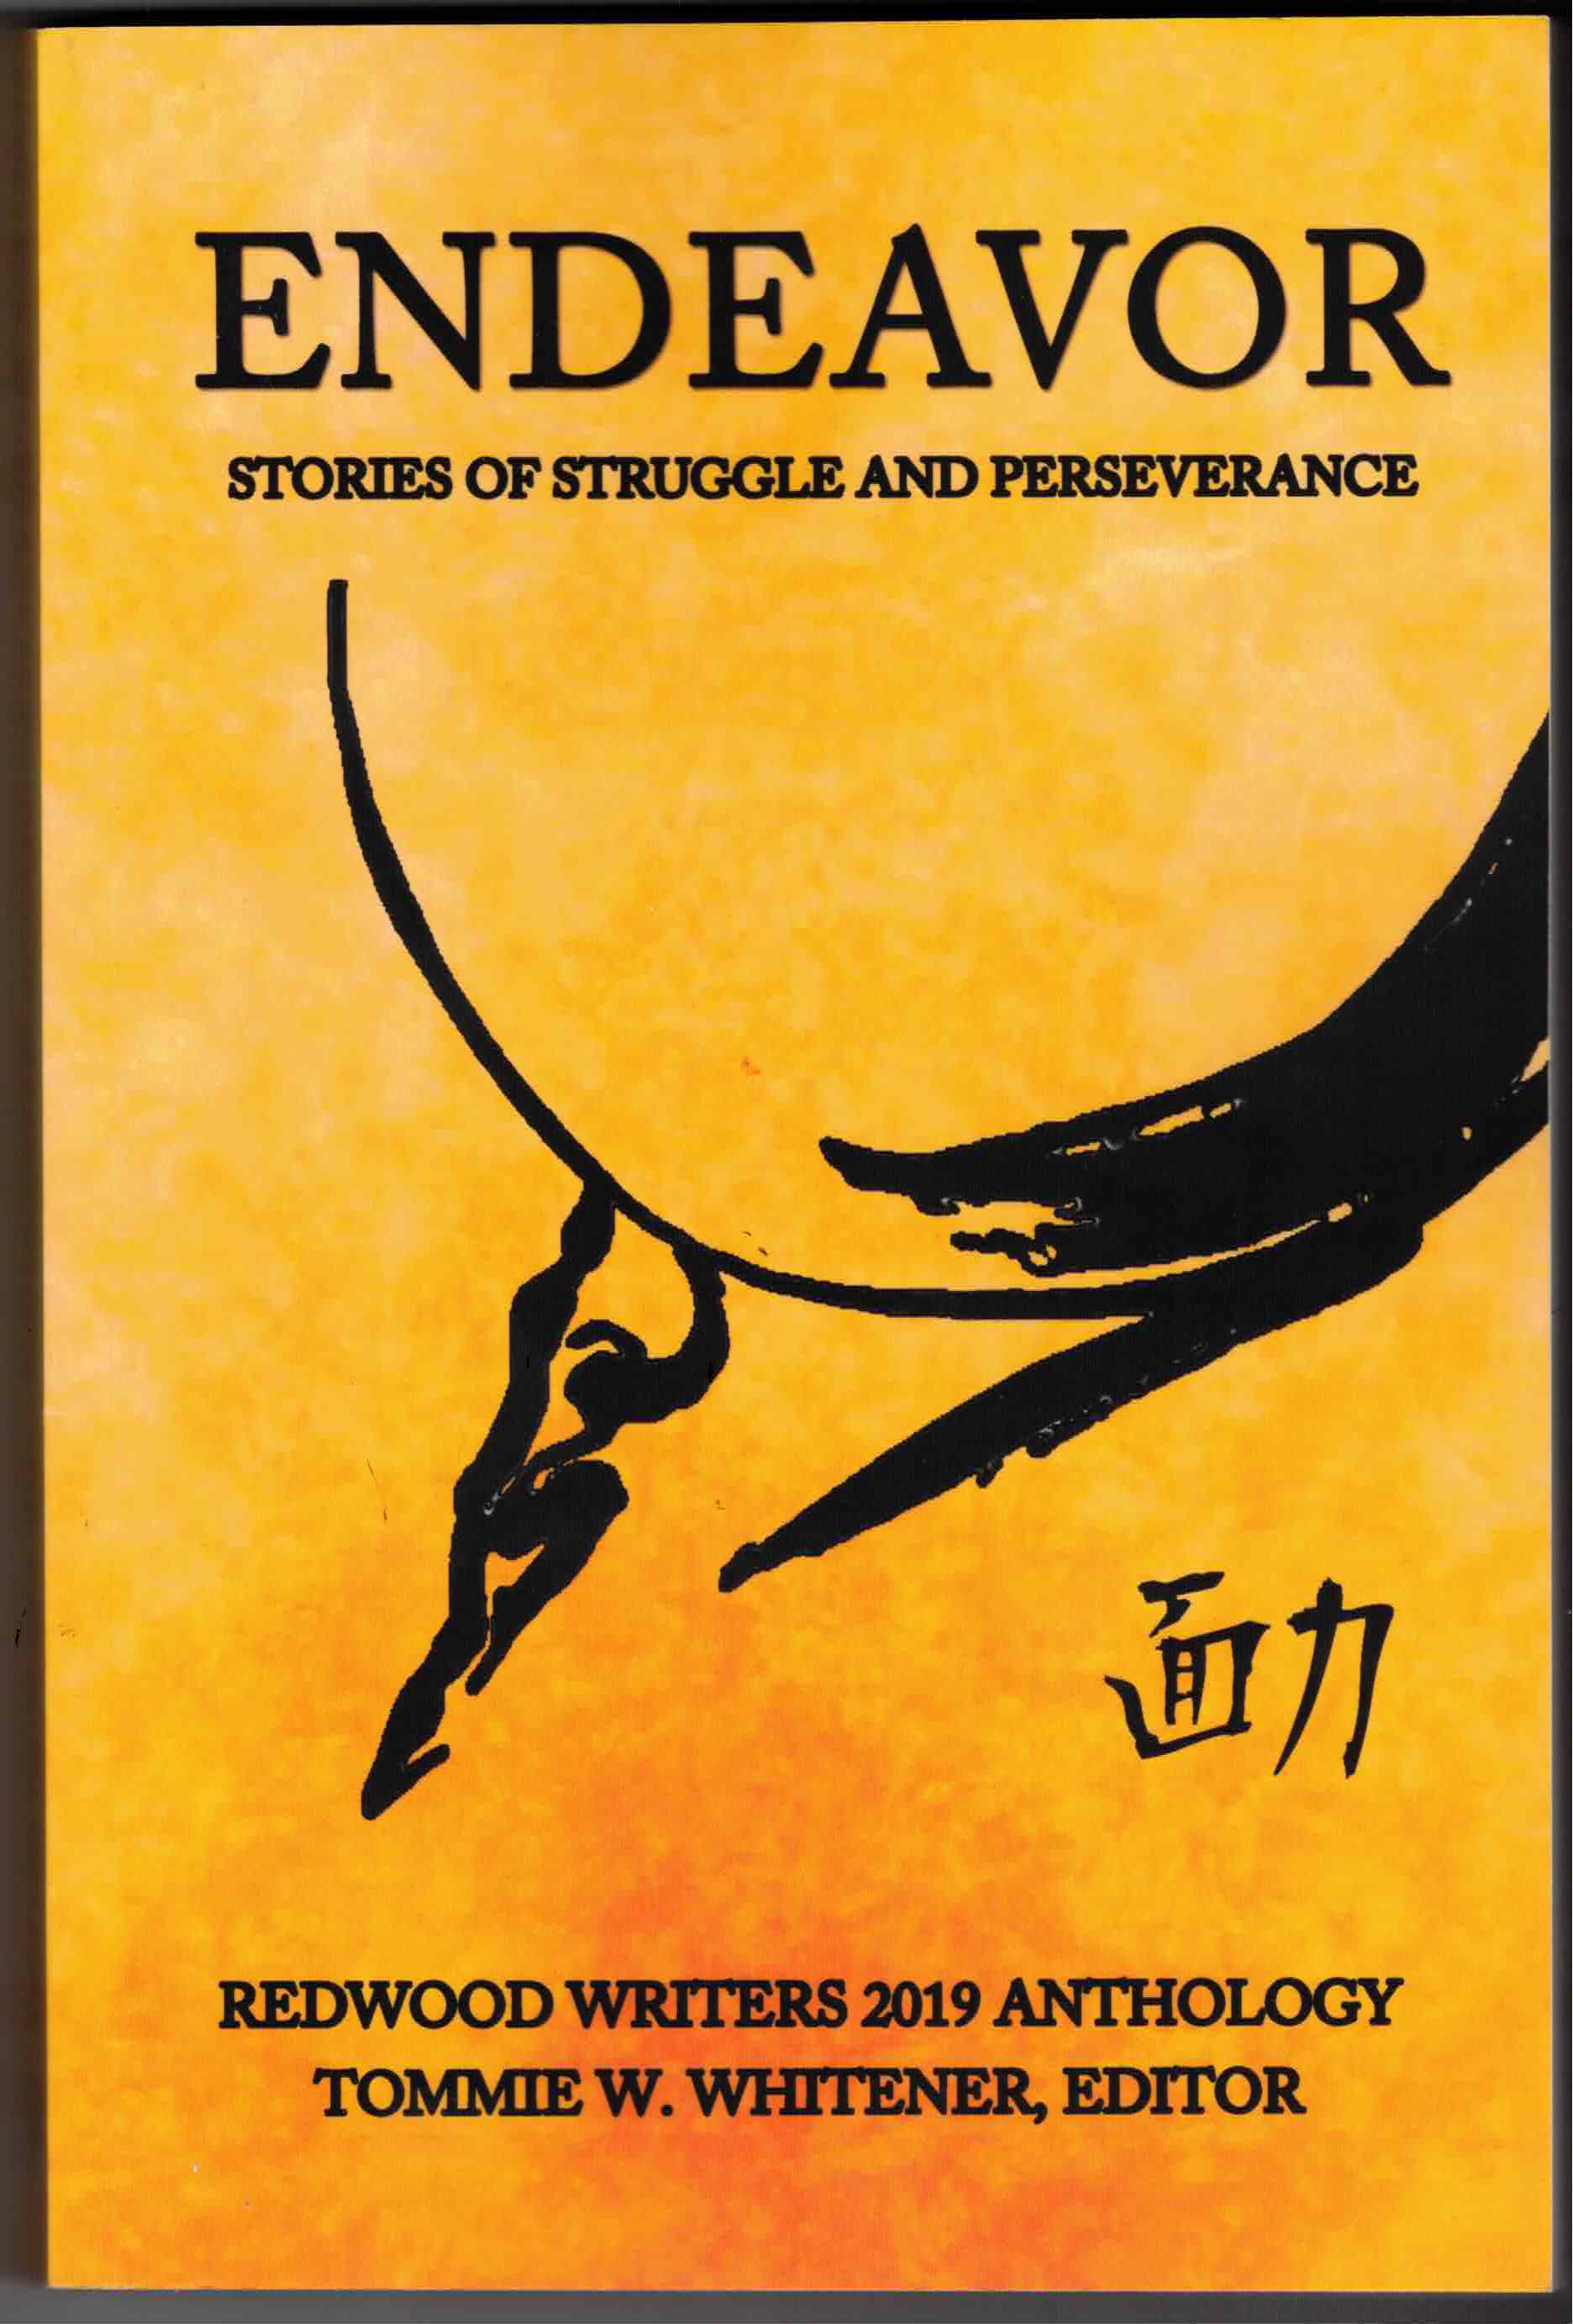 """- The forty-four works of fiction and memoir contained in this anthology all reflect the volume's theme and title, """"Endeavor: Stories of Struggle and Perseverance."""